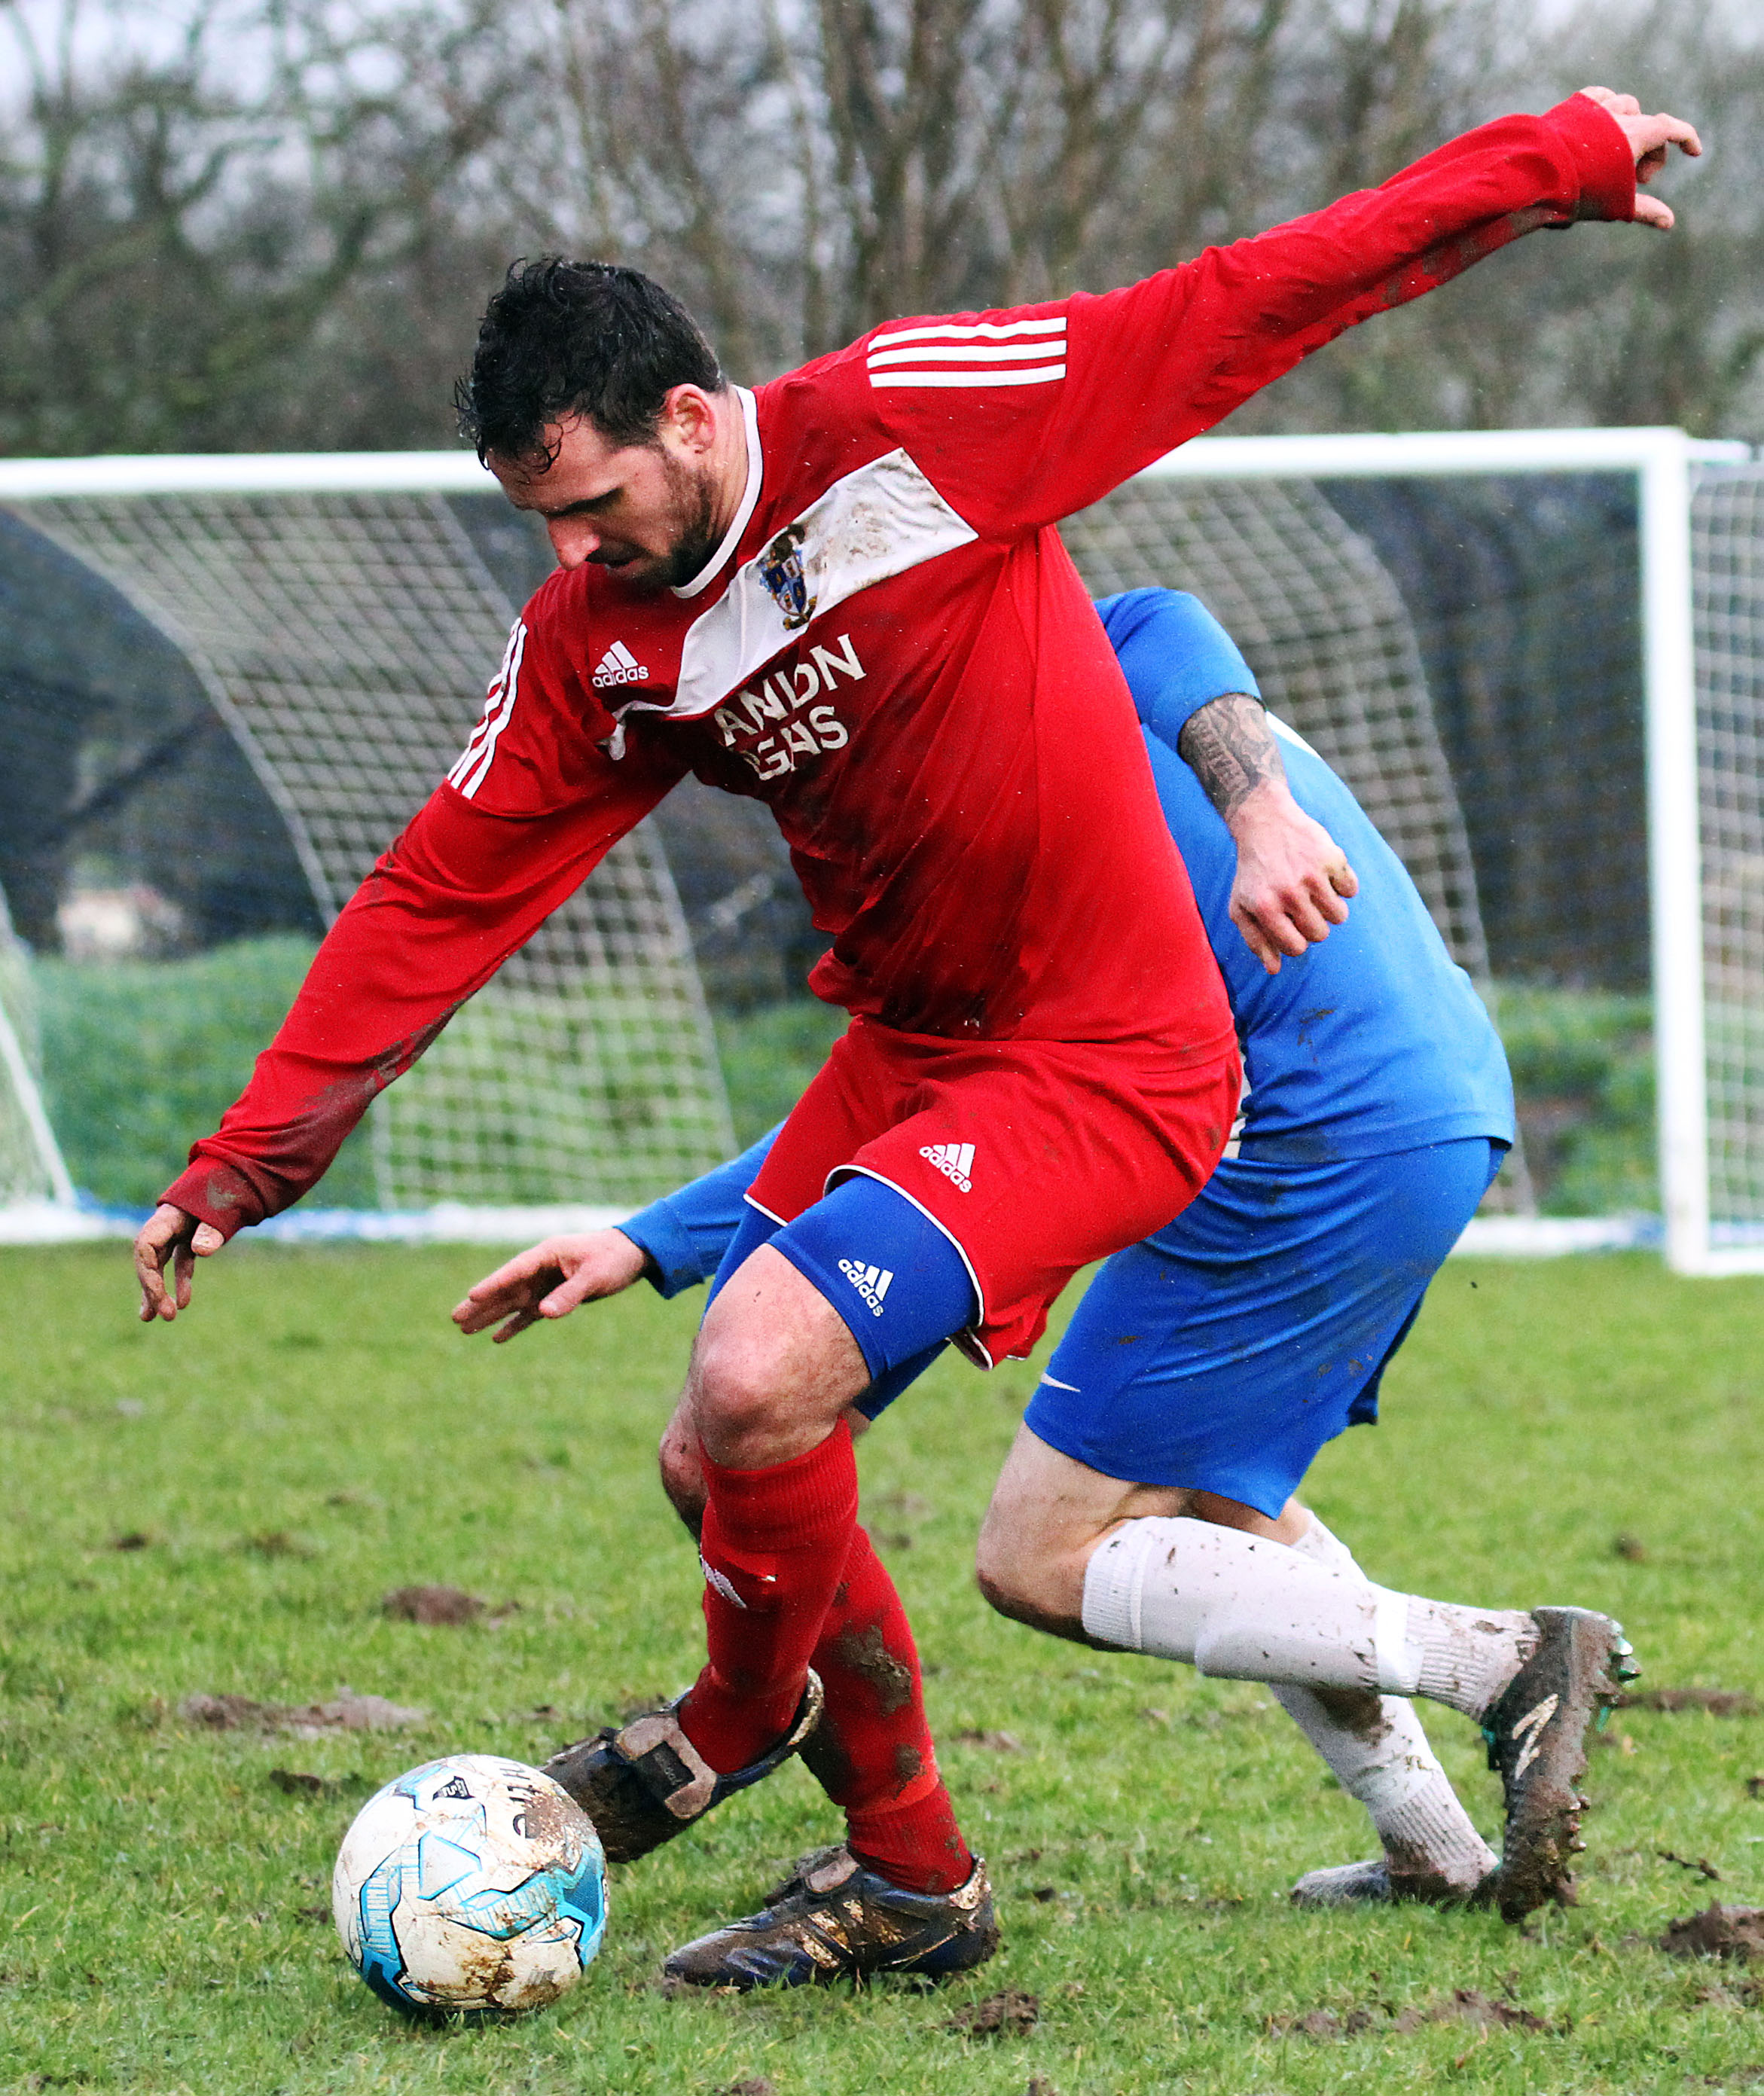 Monkton won 3-2 at Narberth last week in the only Division One game. PICTURE: Susan McKehon.